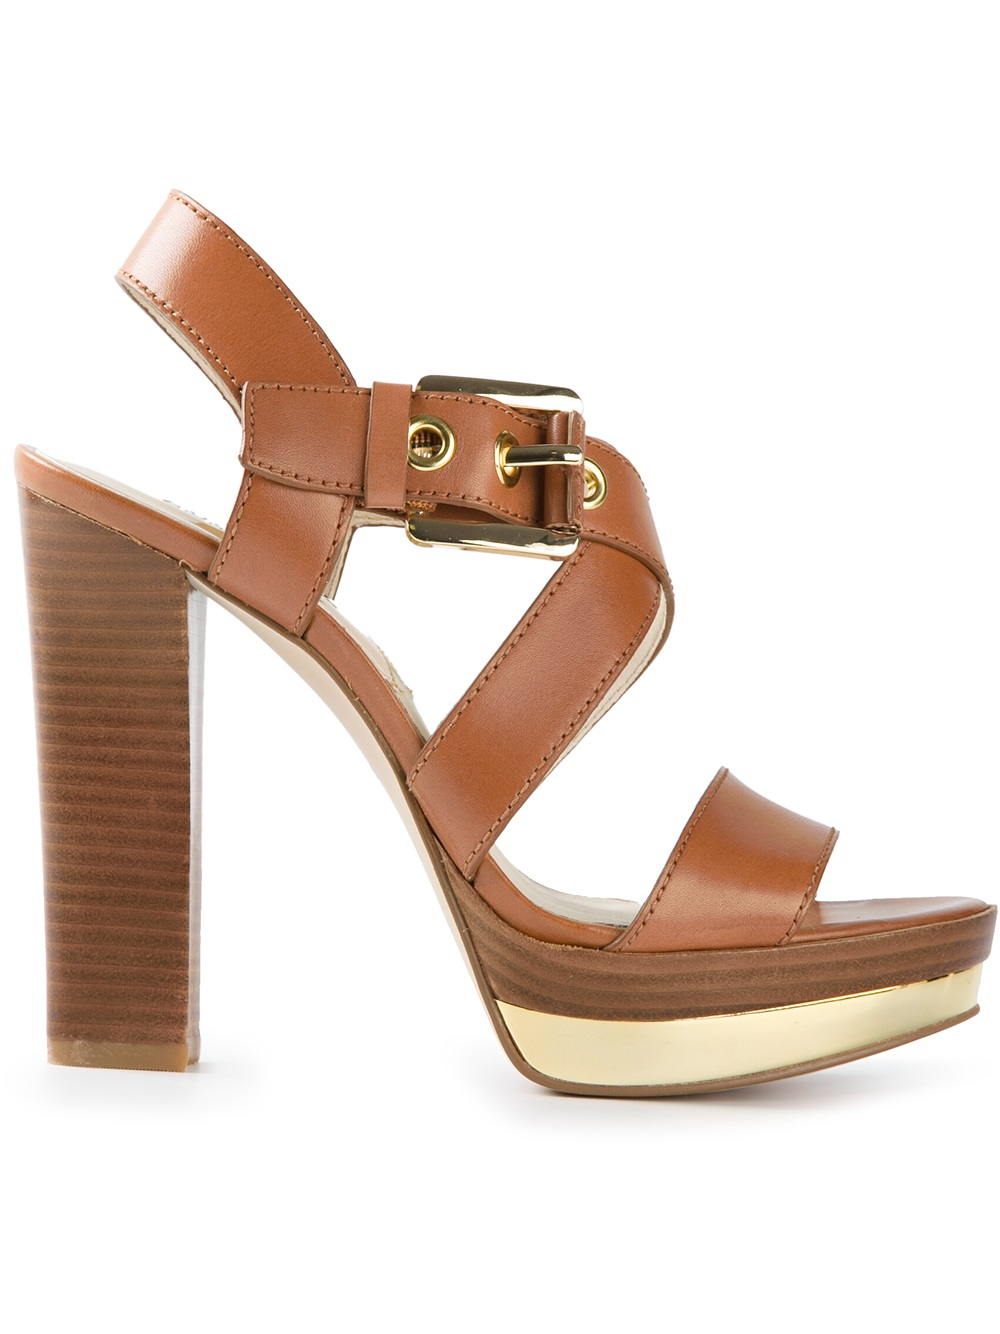 Michael Kors Brown And Gold Shoes